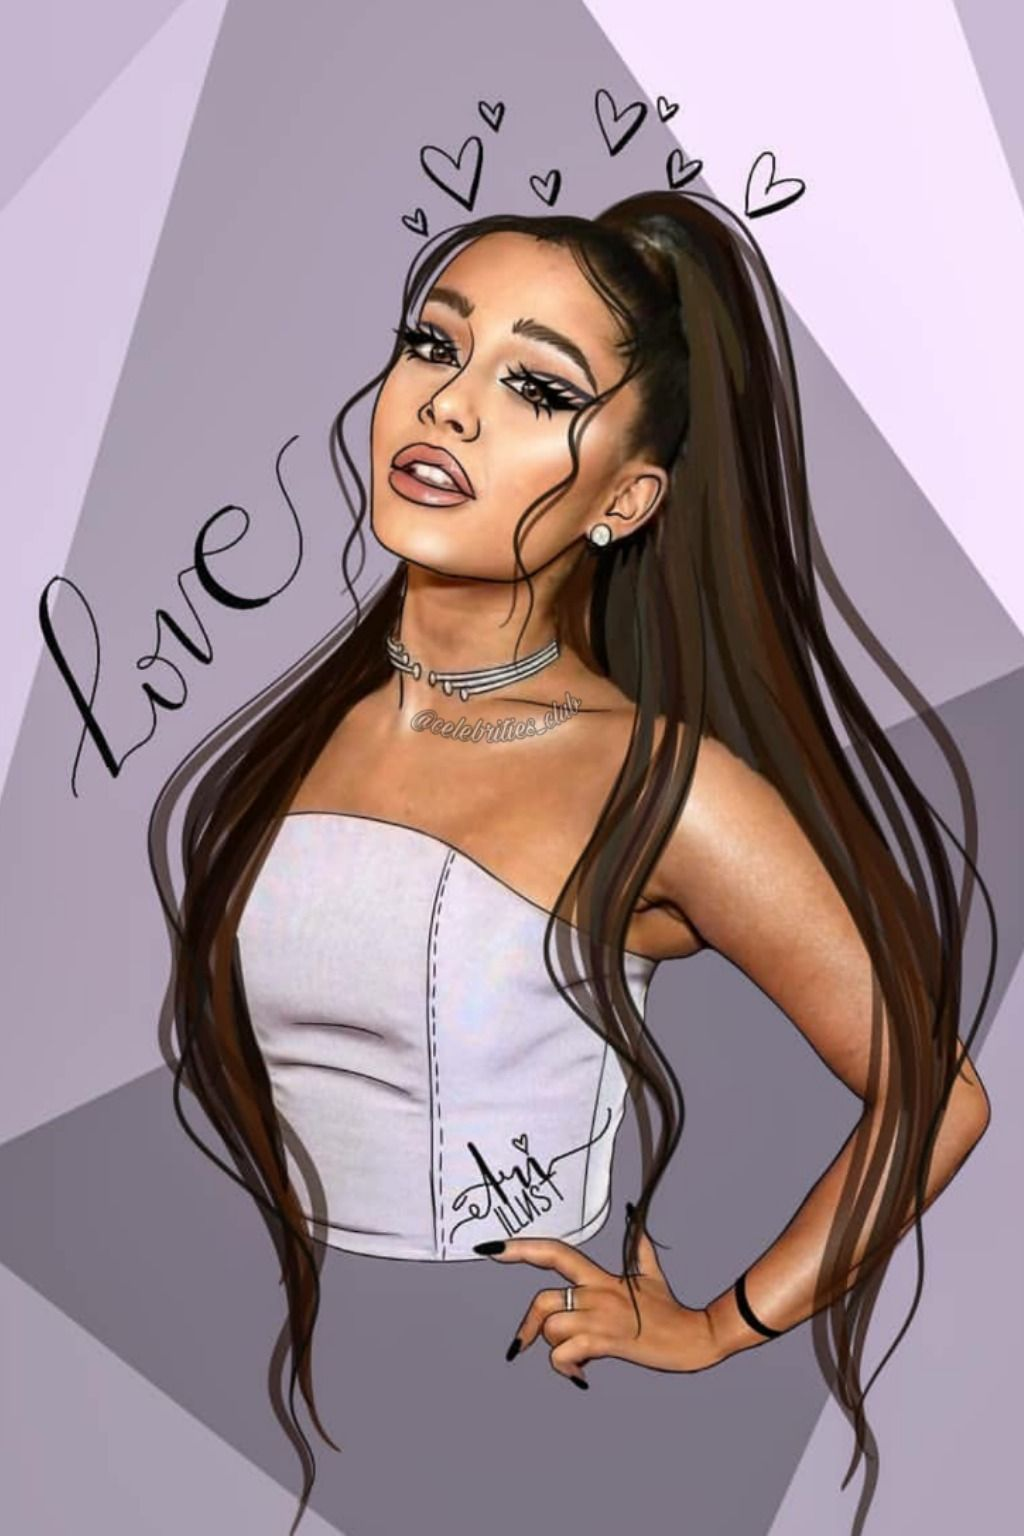 7 Ariana Grande Masterpieces to Freak Out Over While